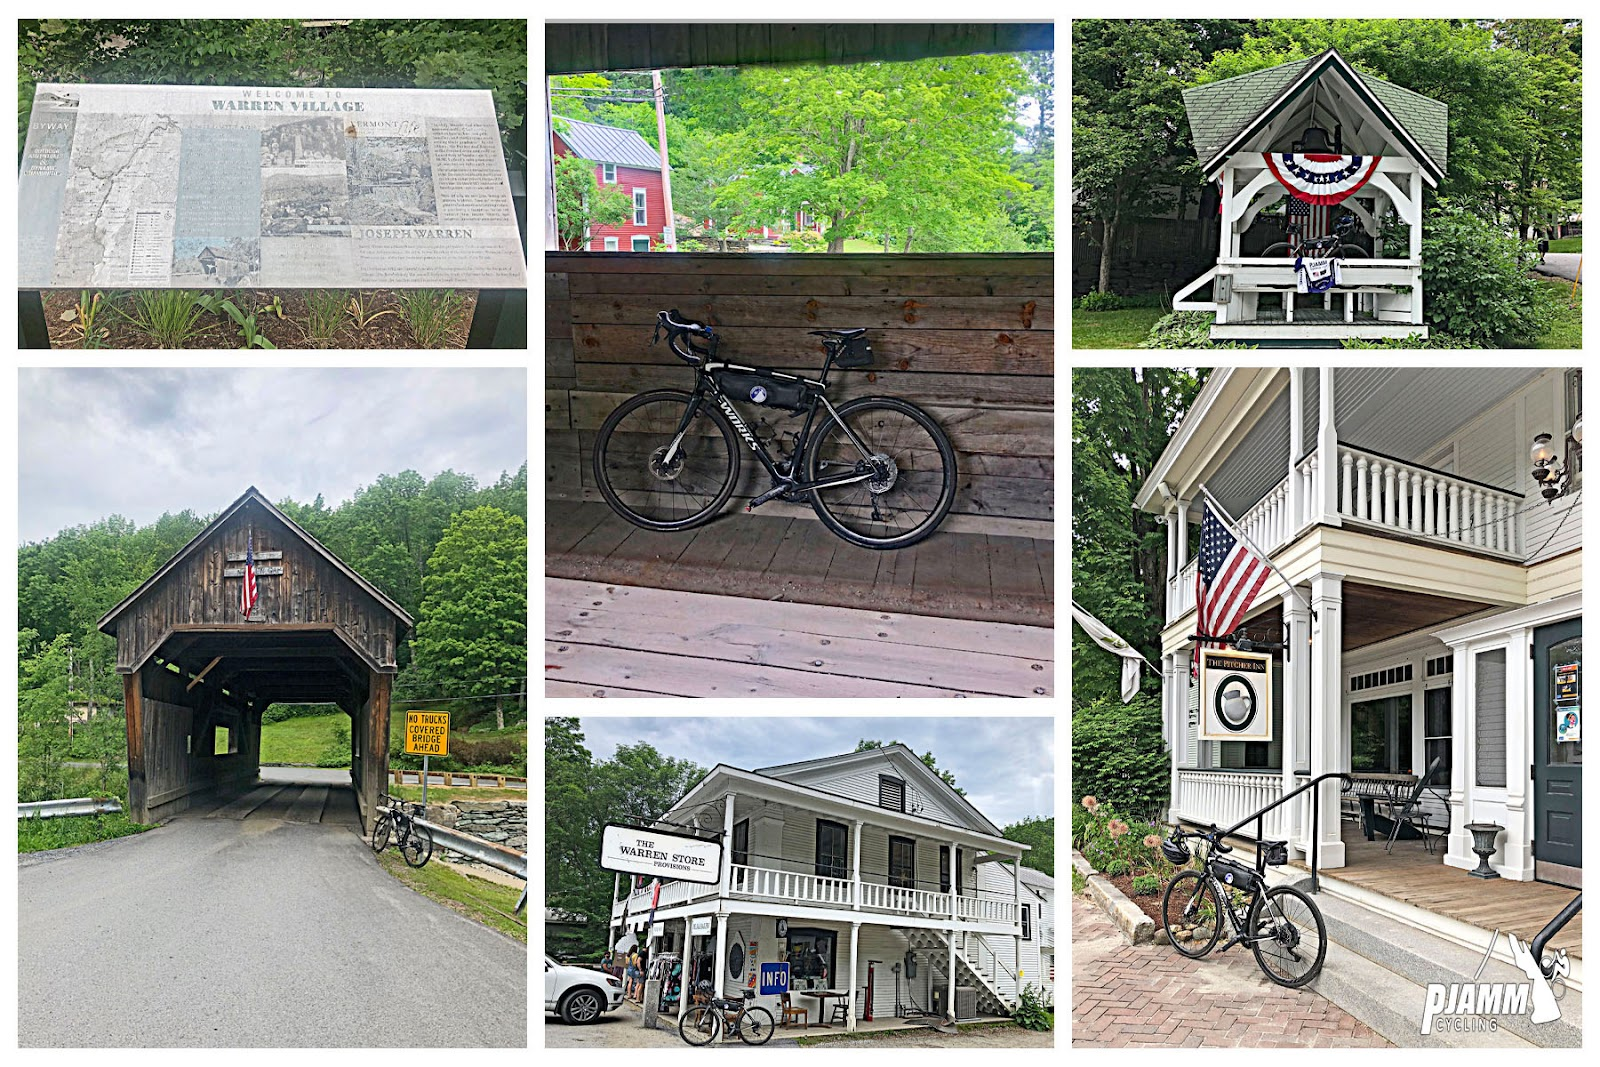 Cycling Lincoln Gap East - photo collage, Warren Village visitor's informational sign, bike propped against wooden wall of covered bridge with red building in background amidst greenery, small white gazebo with patriotic decoration, front of wooden covered bridge with American flag hanging from it, white two story building with The Warren Store sign, bike propped against deck of The Warren Store